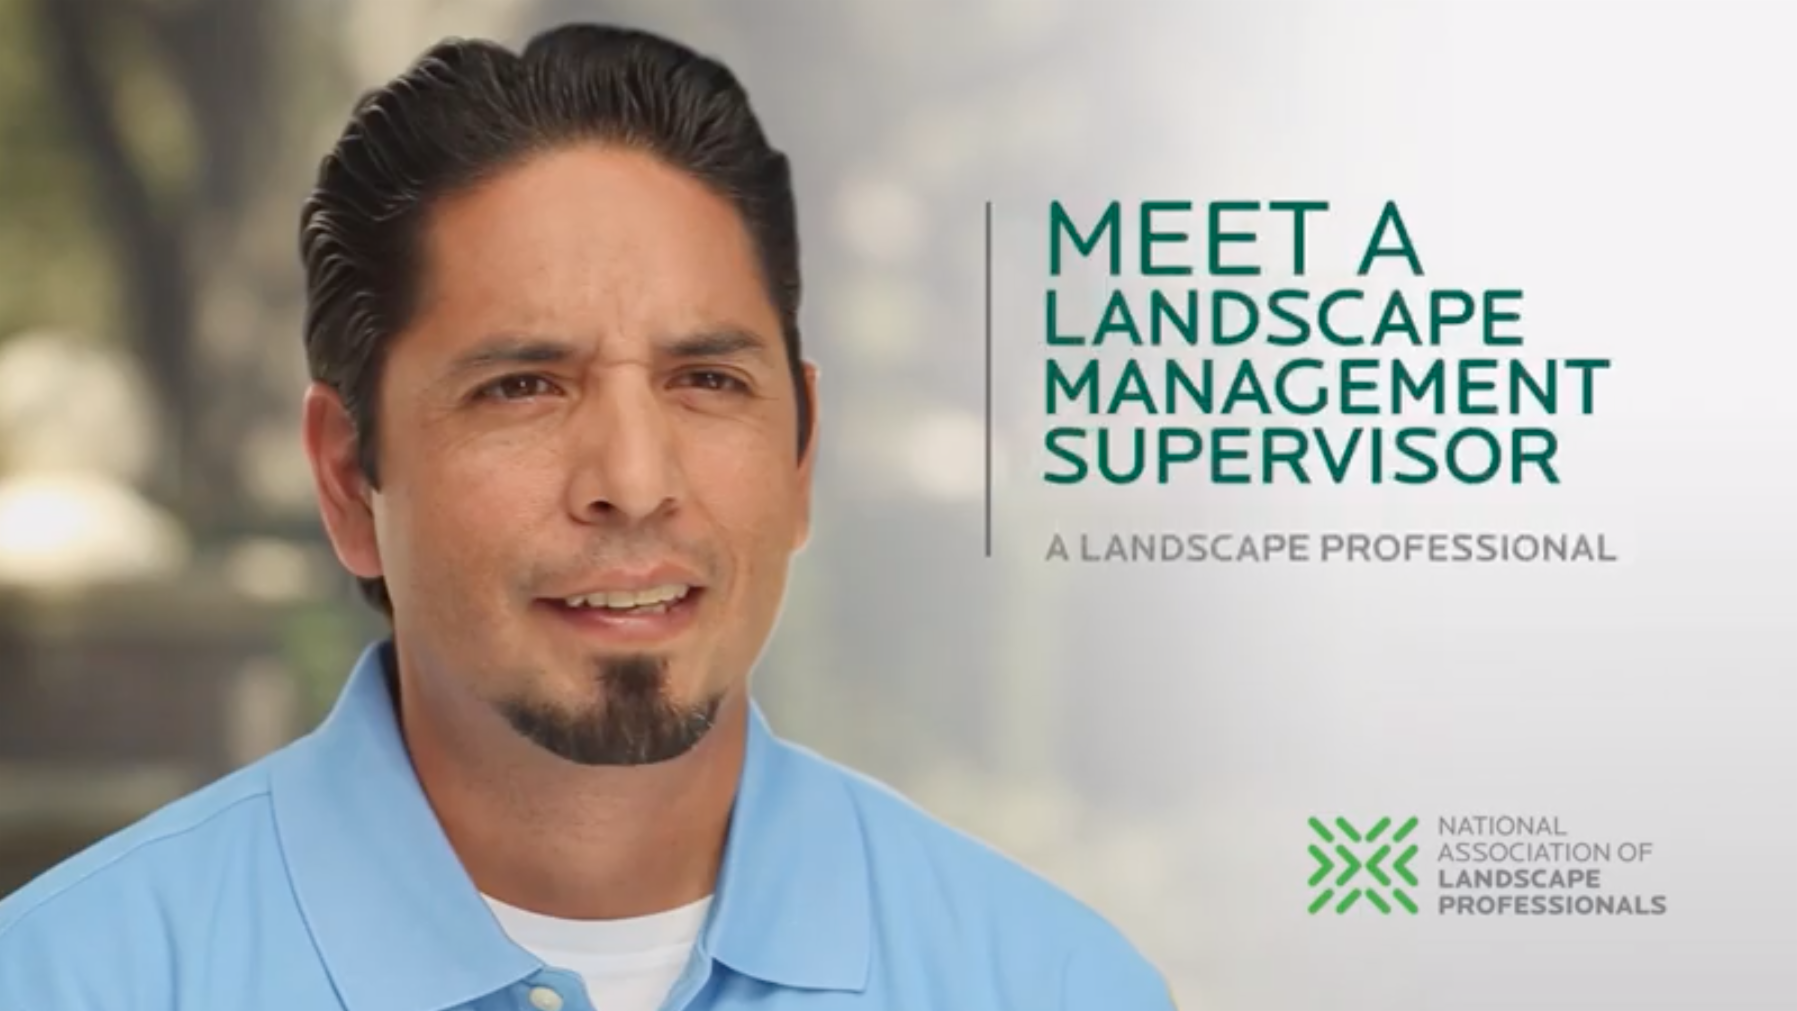 Meet a Landscape Management Supervisor - Landscape Industry Testimonial Videos